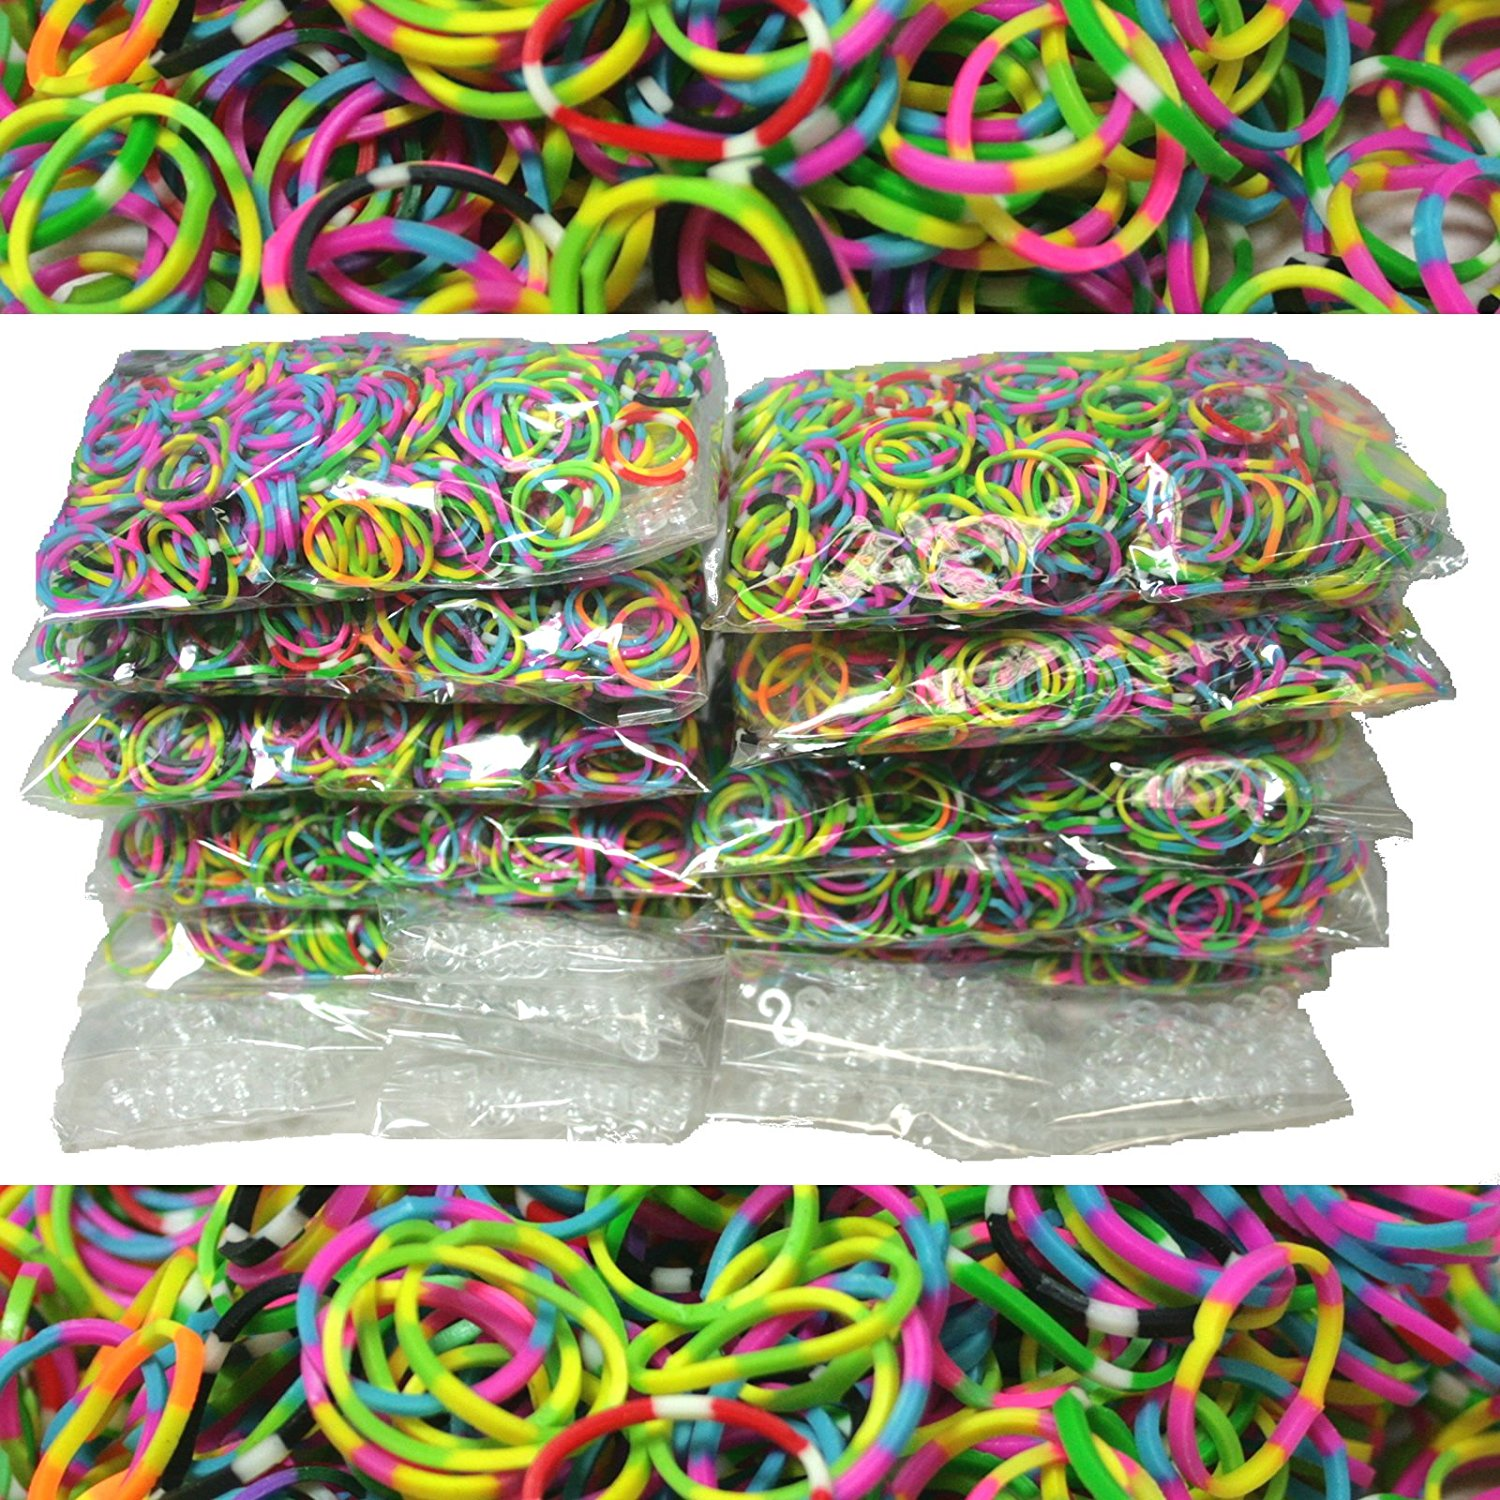 6000 Piece Tie Dye Rubber Band and S-Clips Loom Art and Craft Kids Rainbow Bracelet Refill Pack, USA, Brand Bluedot Trading